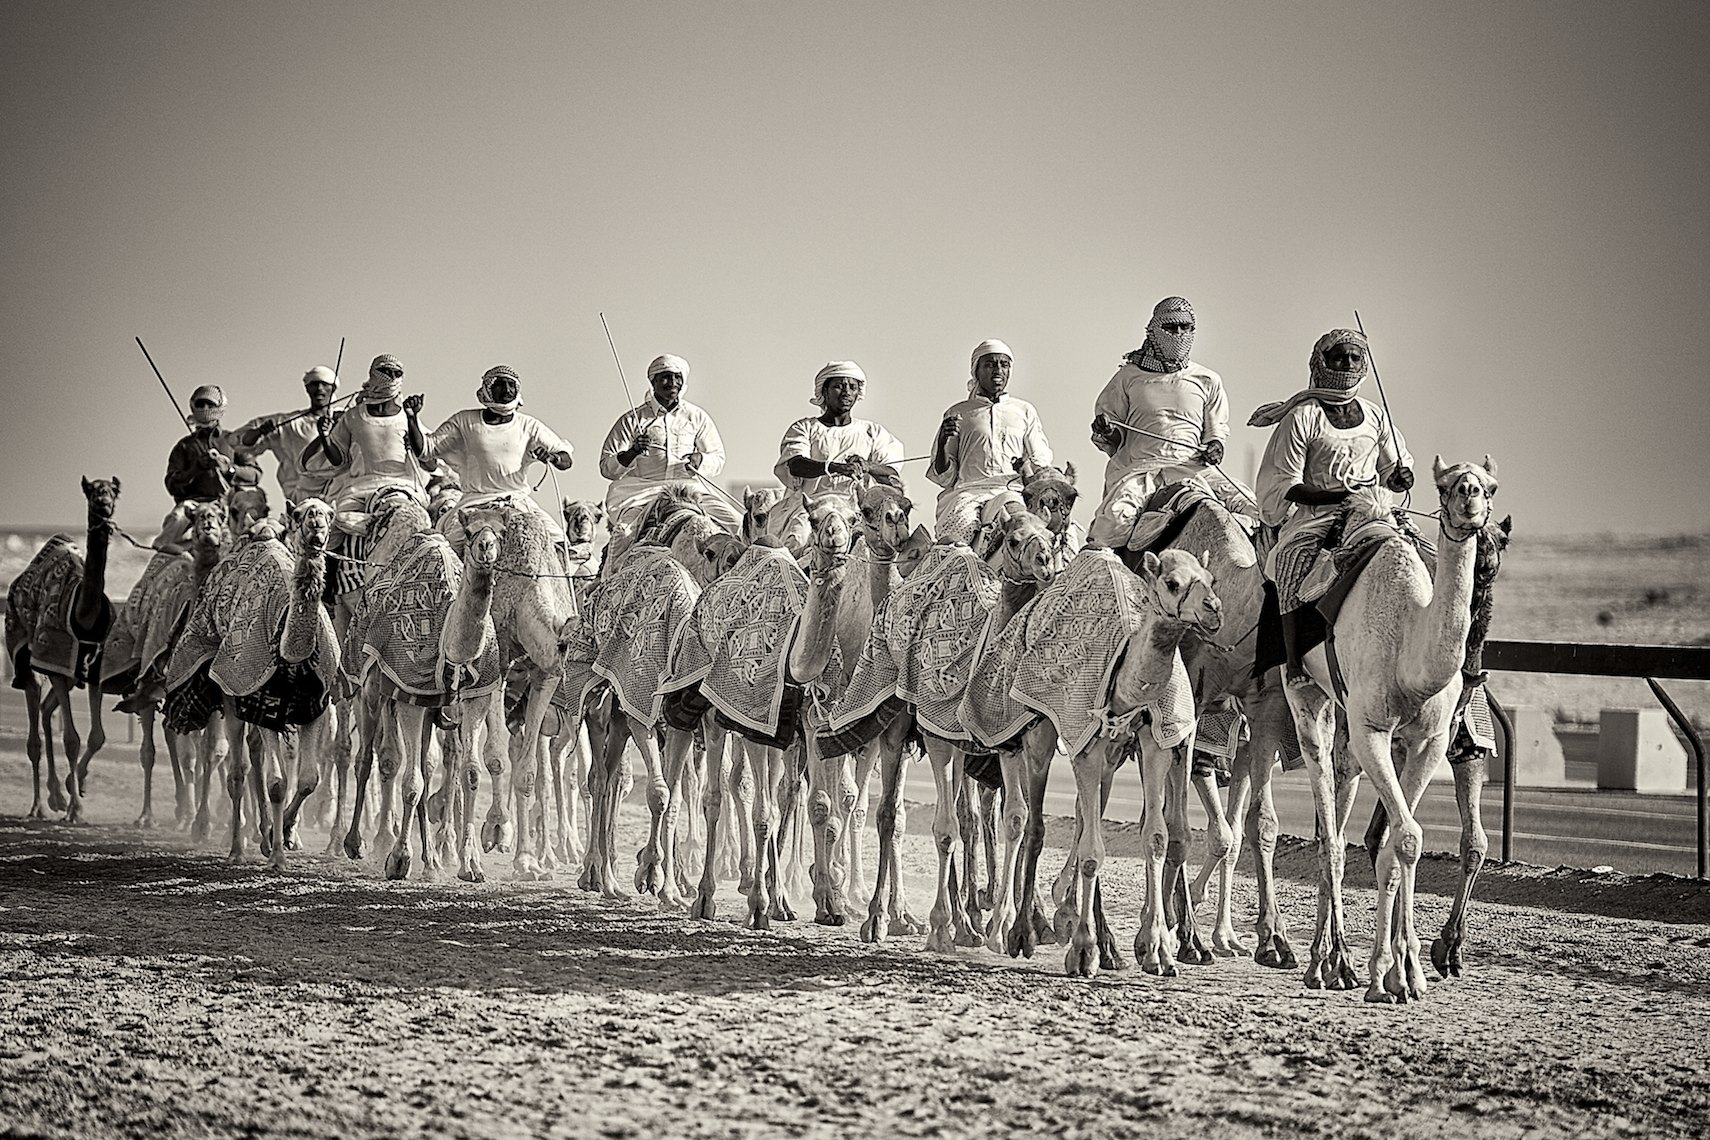 Qatar Al Shahaniya camel race training black and white